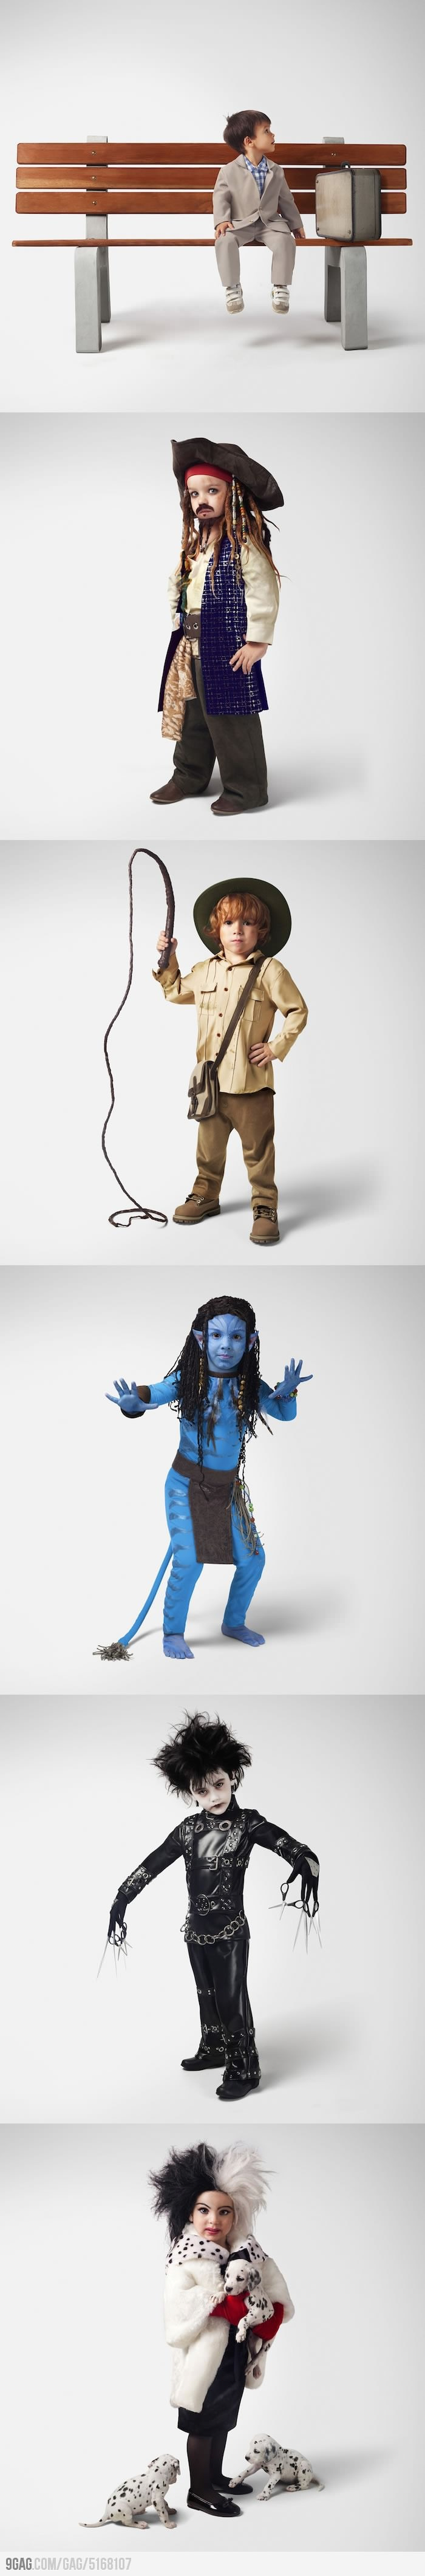 Awesome Movie Cosplays by Kids | Indiana Jones and Edward Scissorhands are adorable.